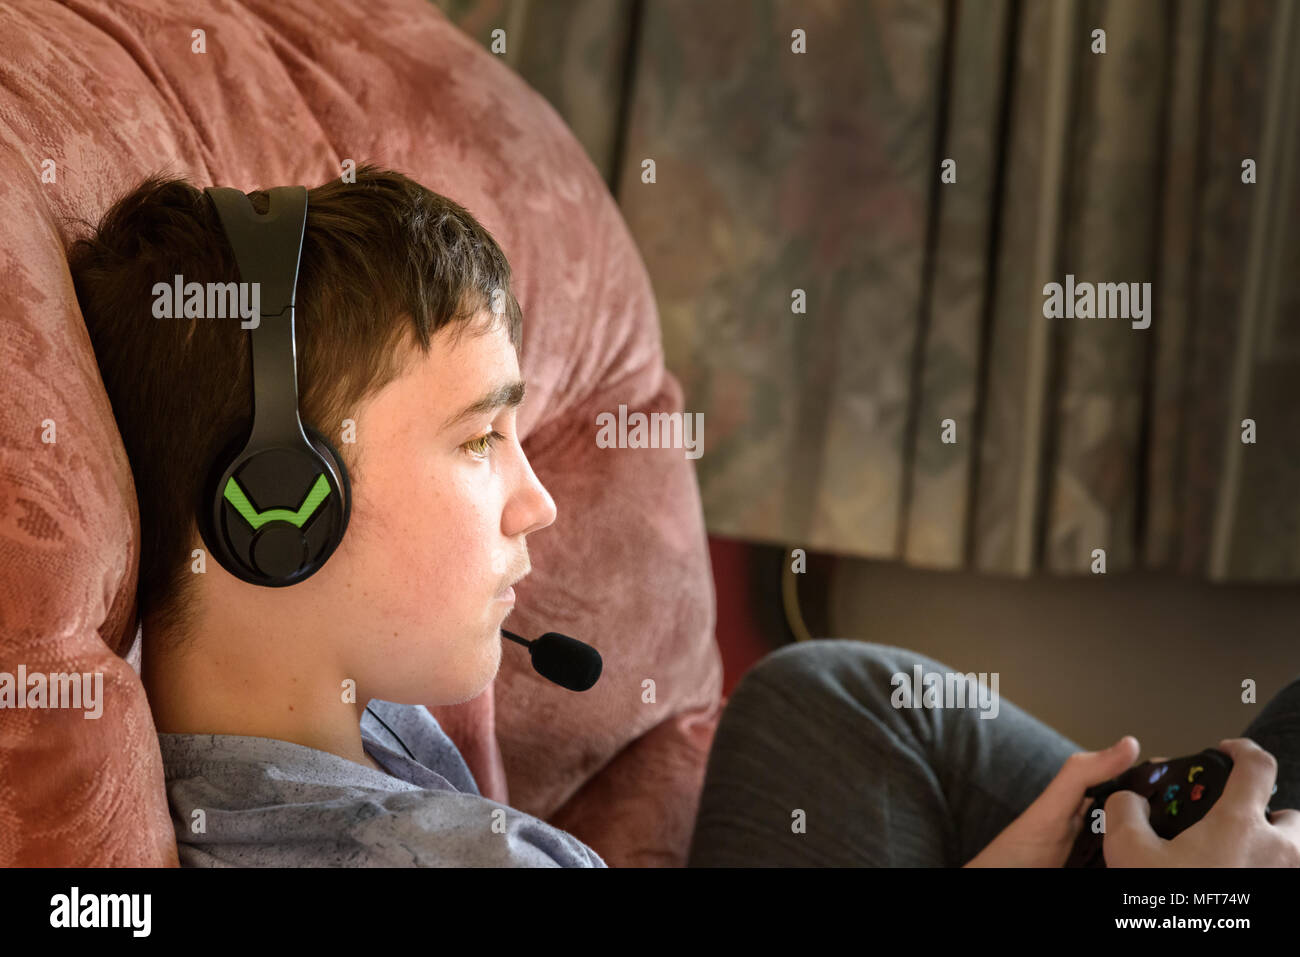 Teenage boy sits engrossed on a comfortable armchair with an x box controller in his hands and headphones plus microphone on his head. - Stock Image